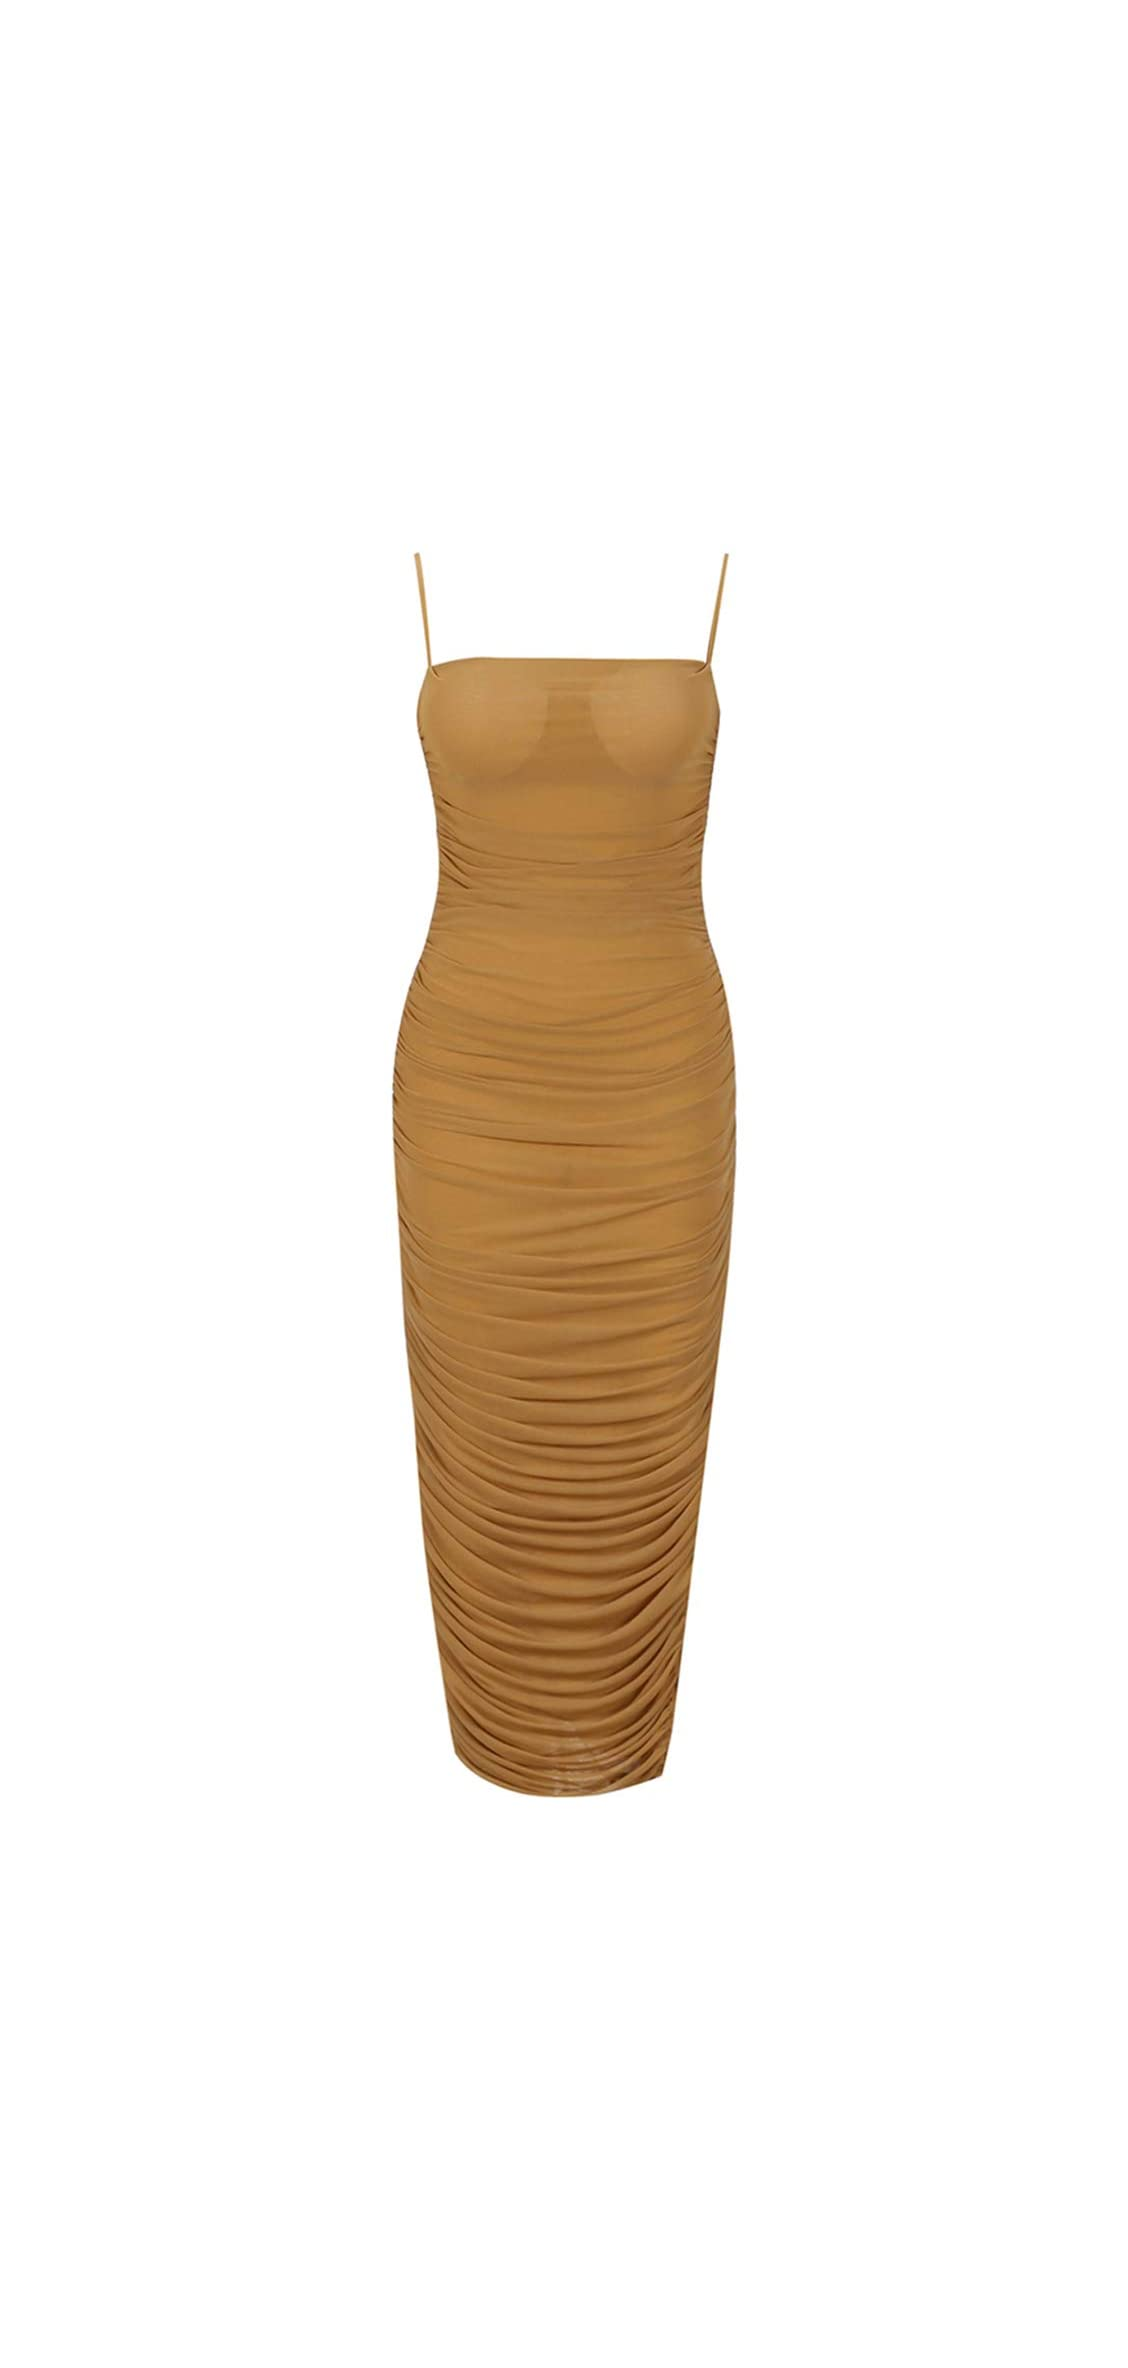 Women's Sexy Mesh See Through Ruched Cocktail Party Midi